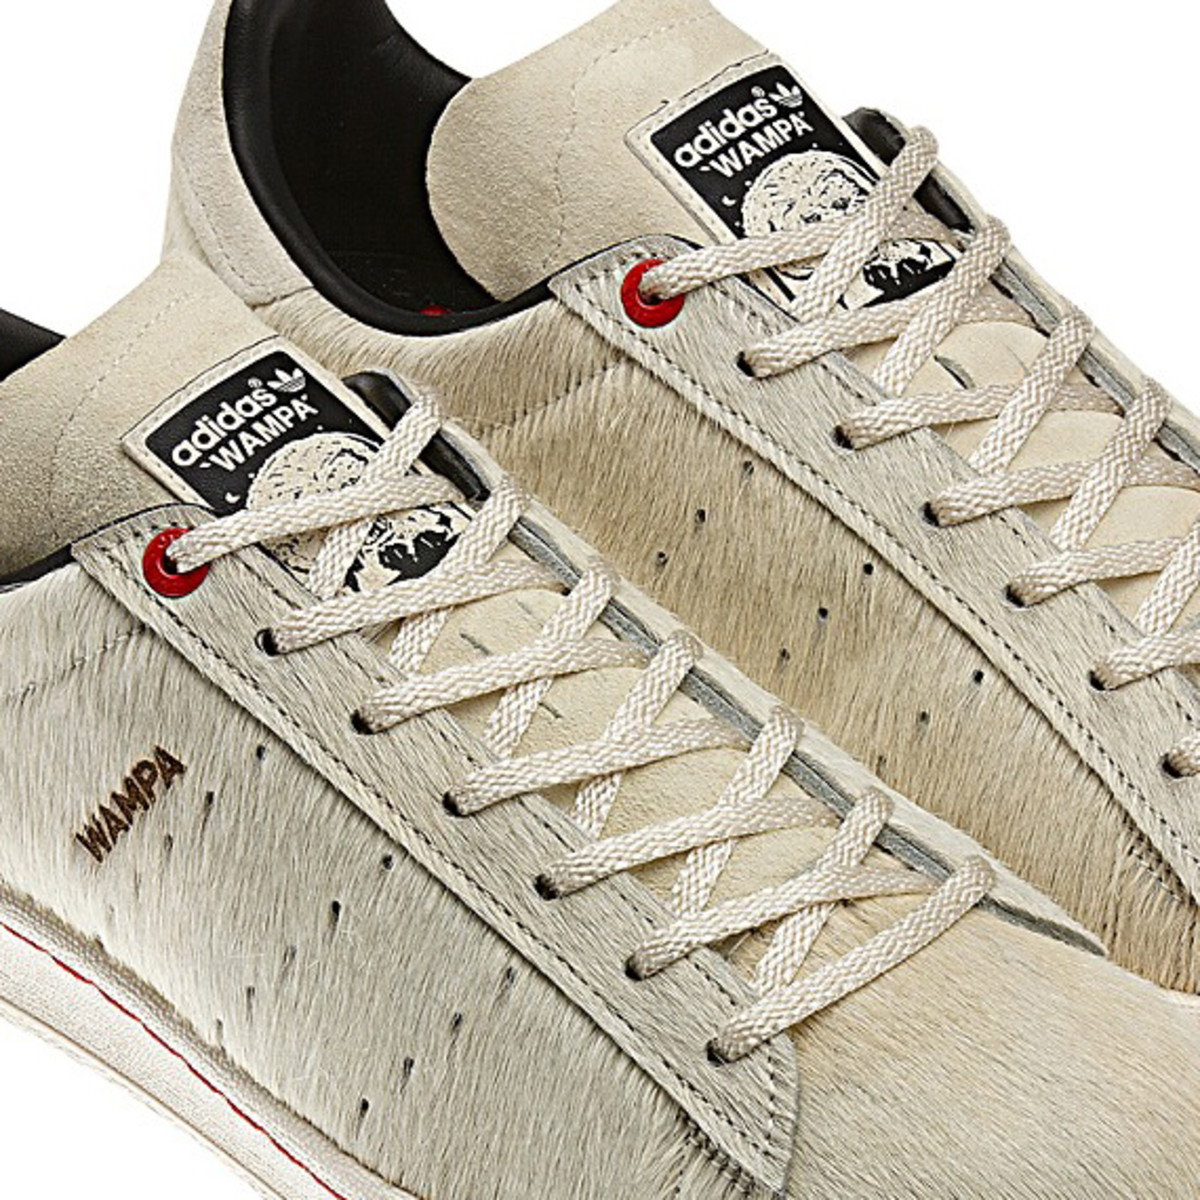 star-wars-adidas-originals-campus-80s-wampa-02